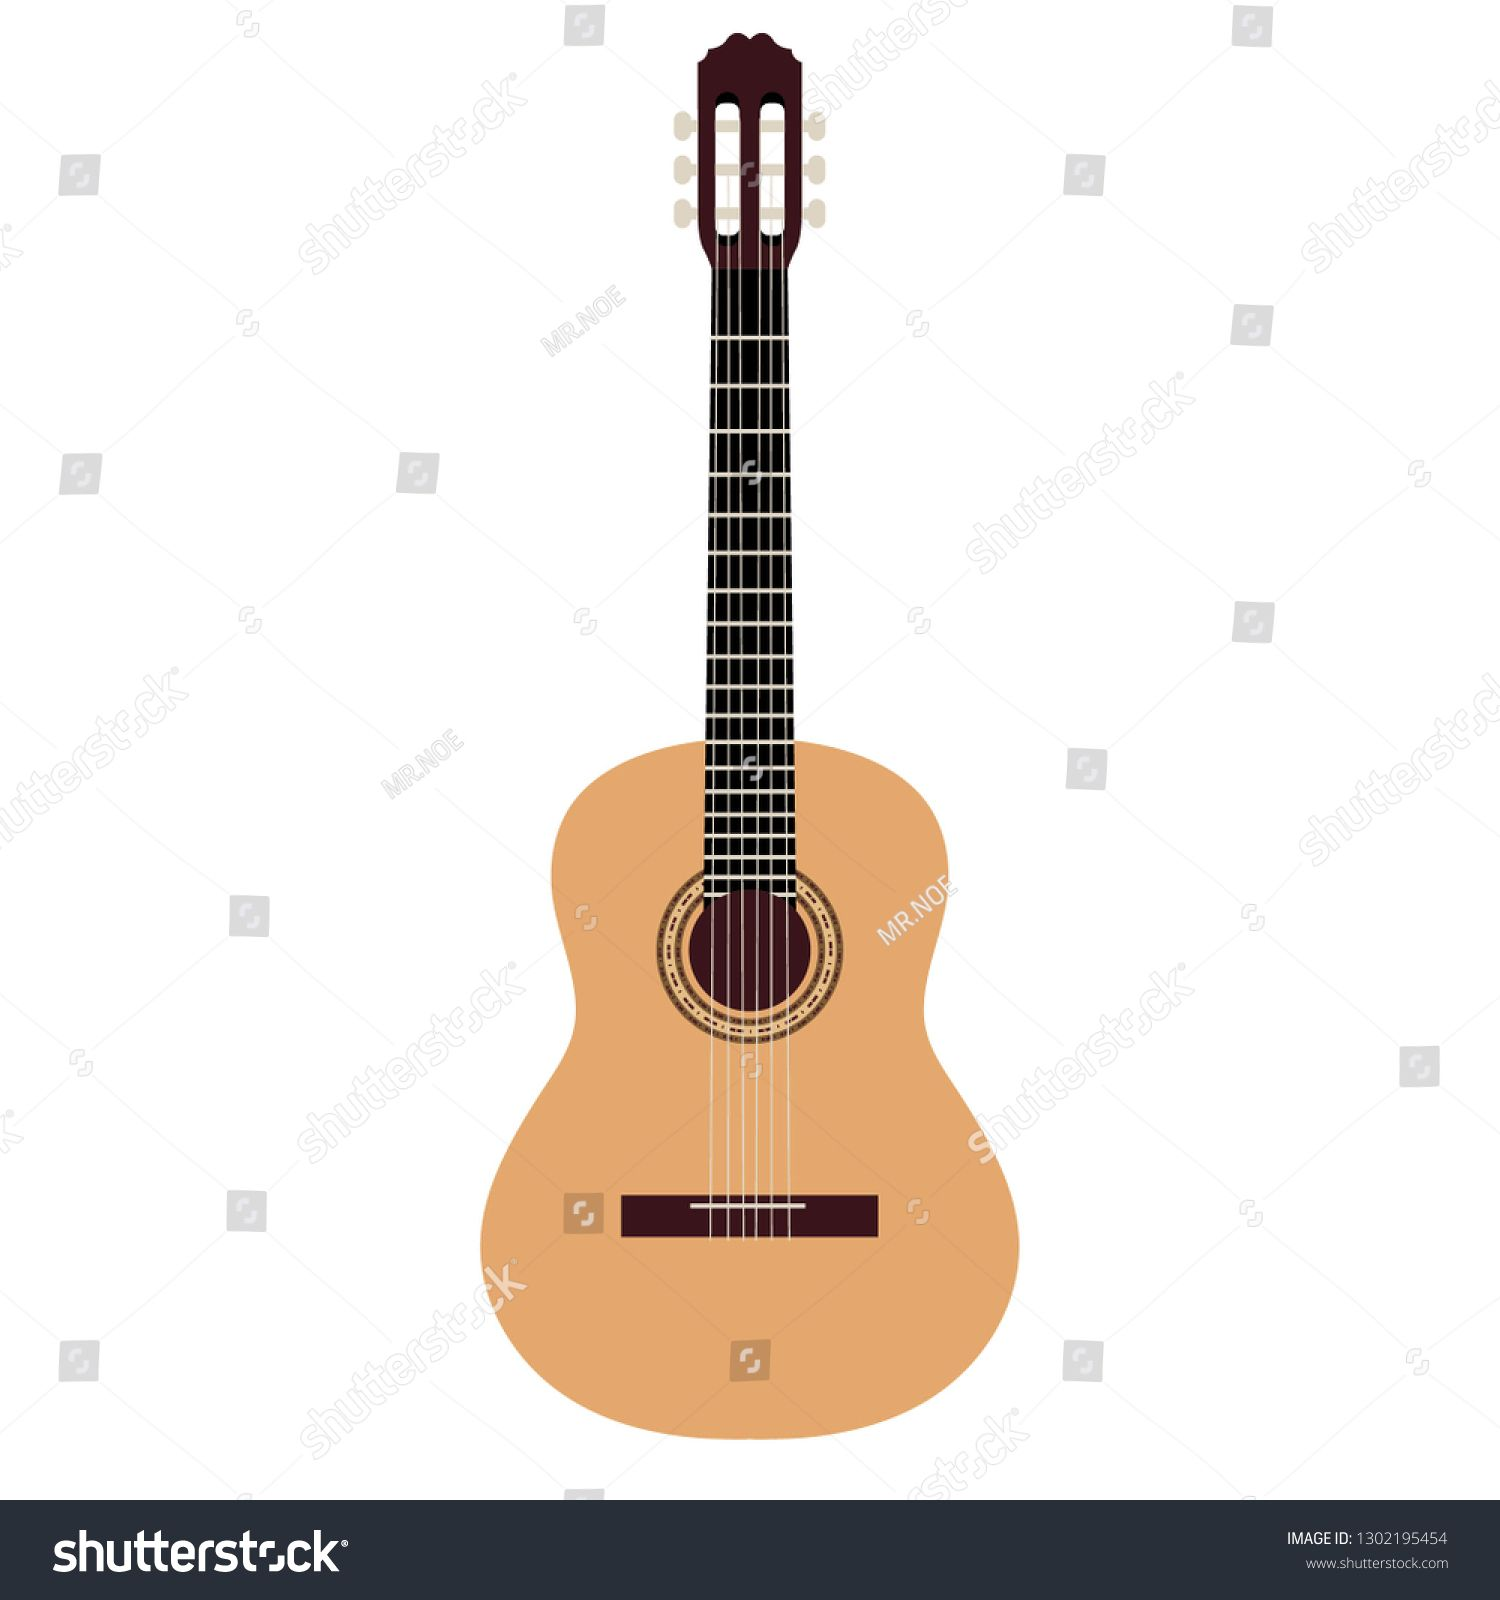 Acoustic Guitar On White Background Vector Illustration Ad Sponsored White Guitar Acoustic Illustration In 2020 White Background Guitar Acoustic